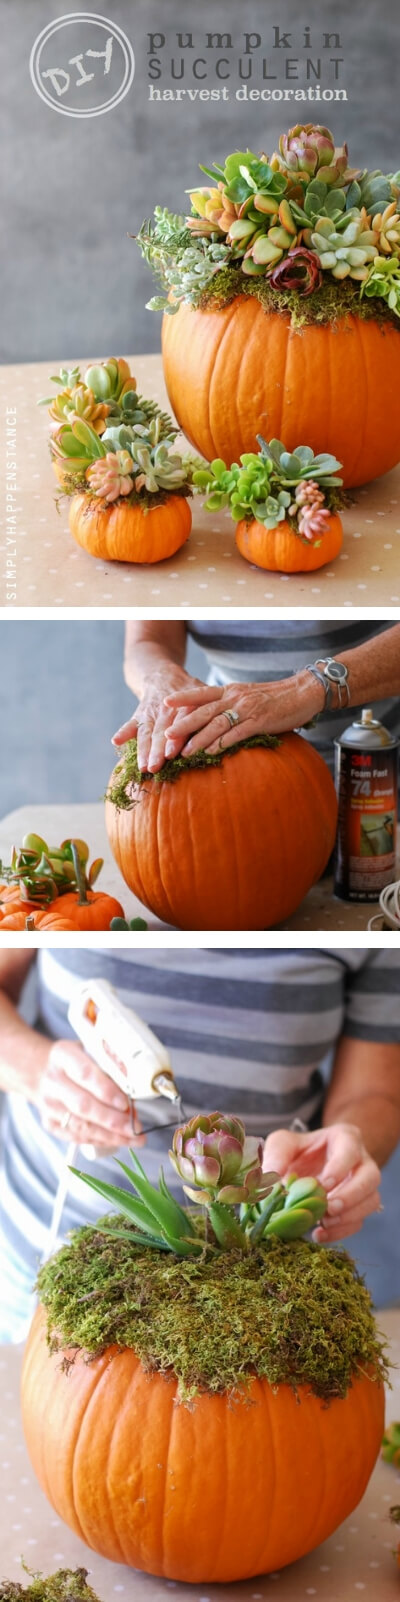 Pumpkin Succulent Harvest | Best DIY Fall Centerpiece Ideas | FarmFoodFamily.com